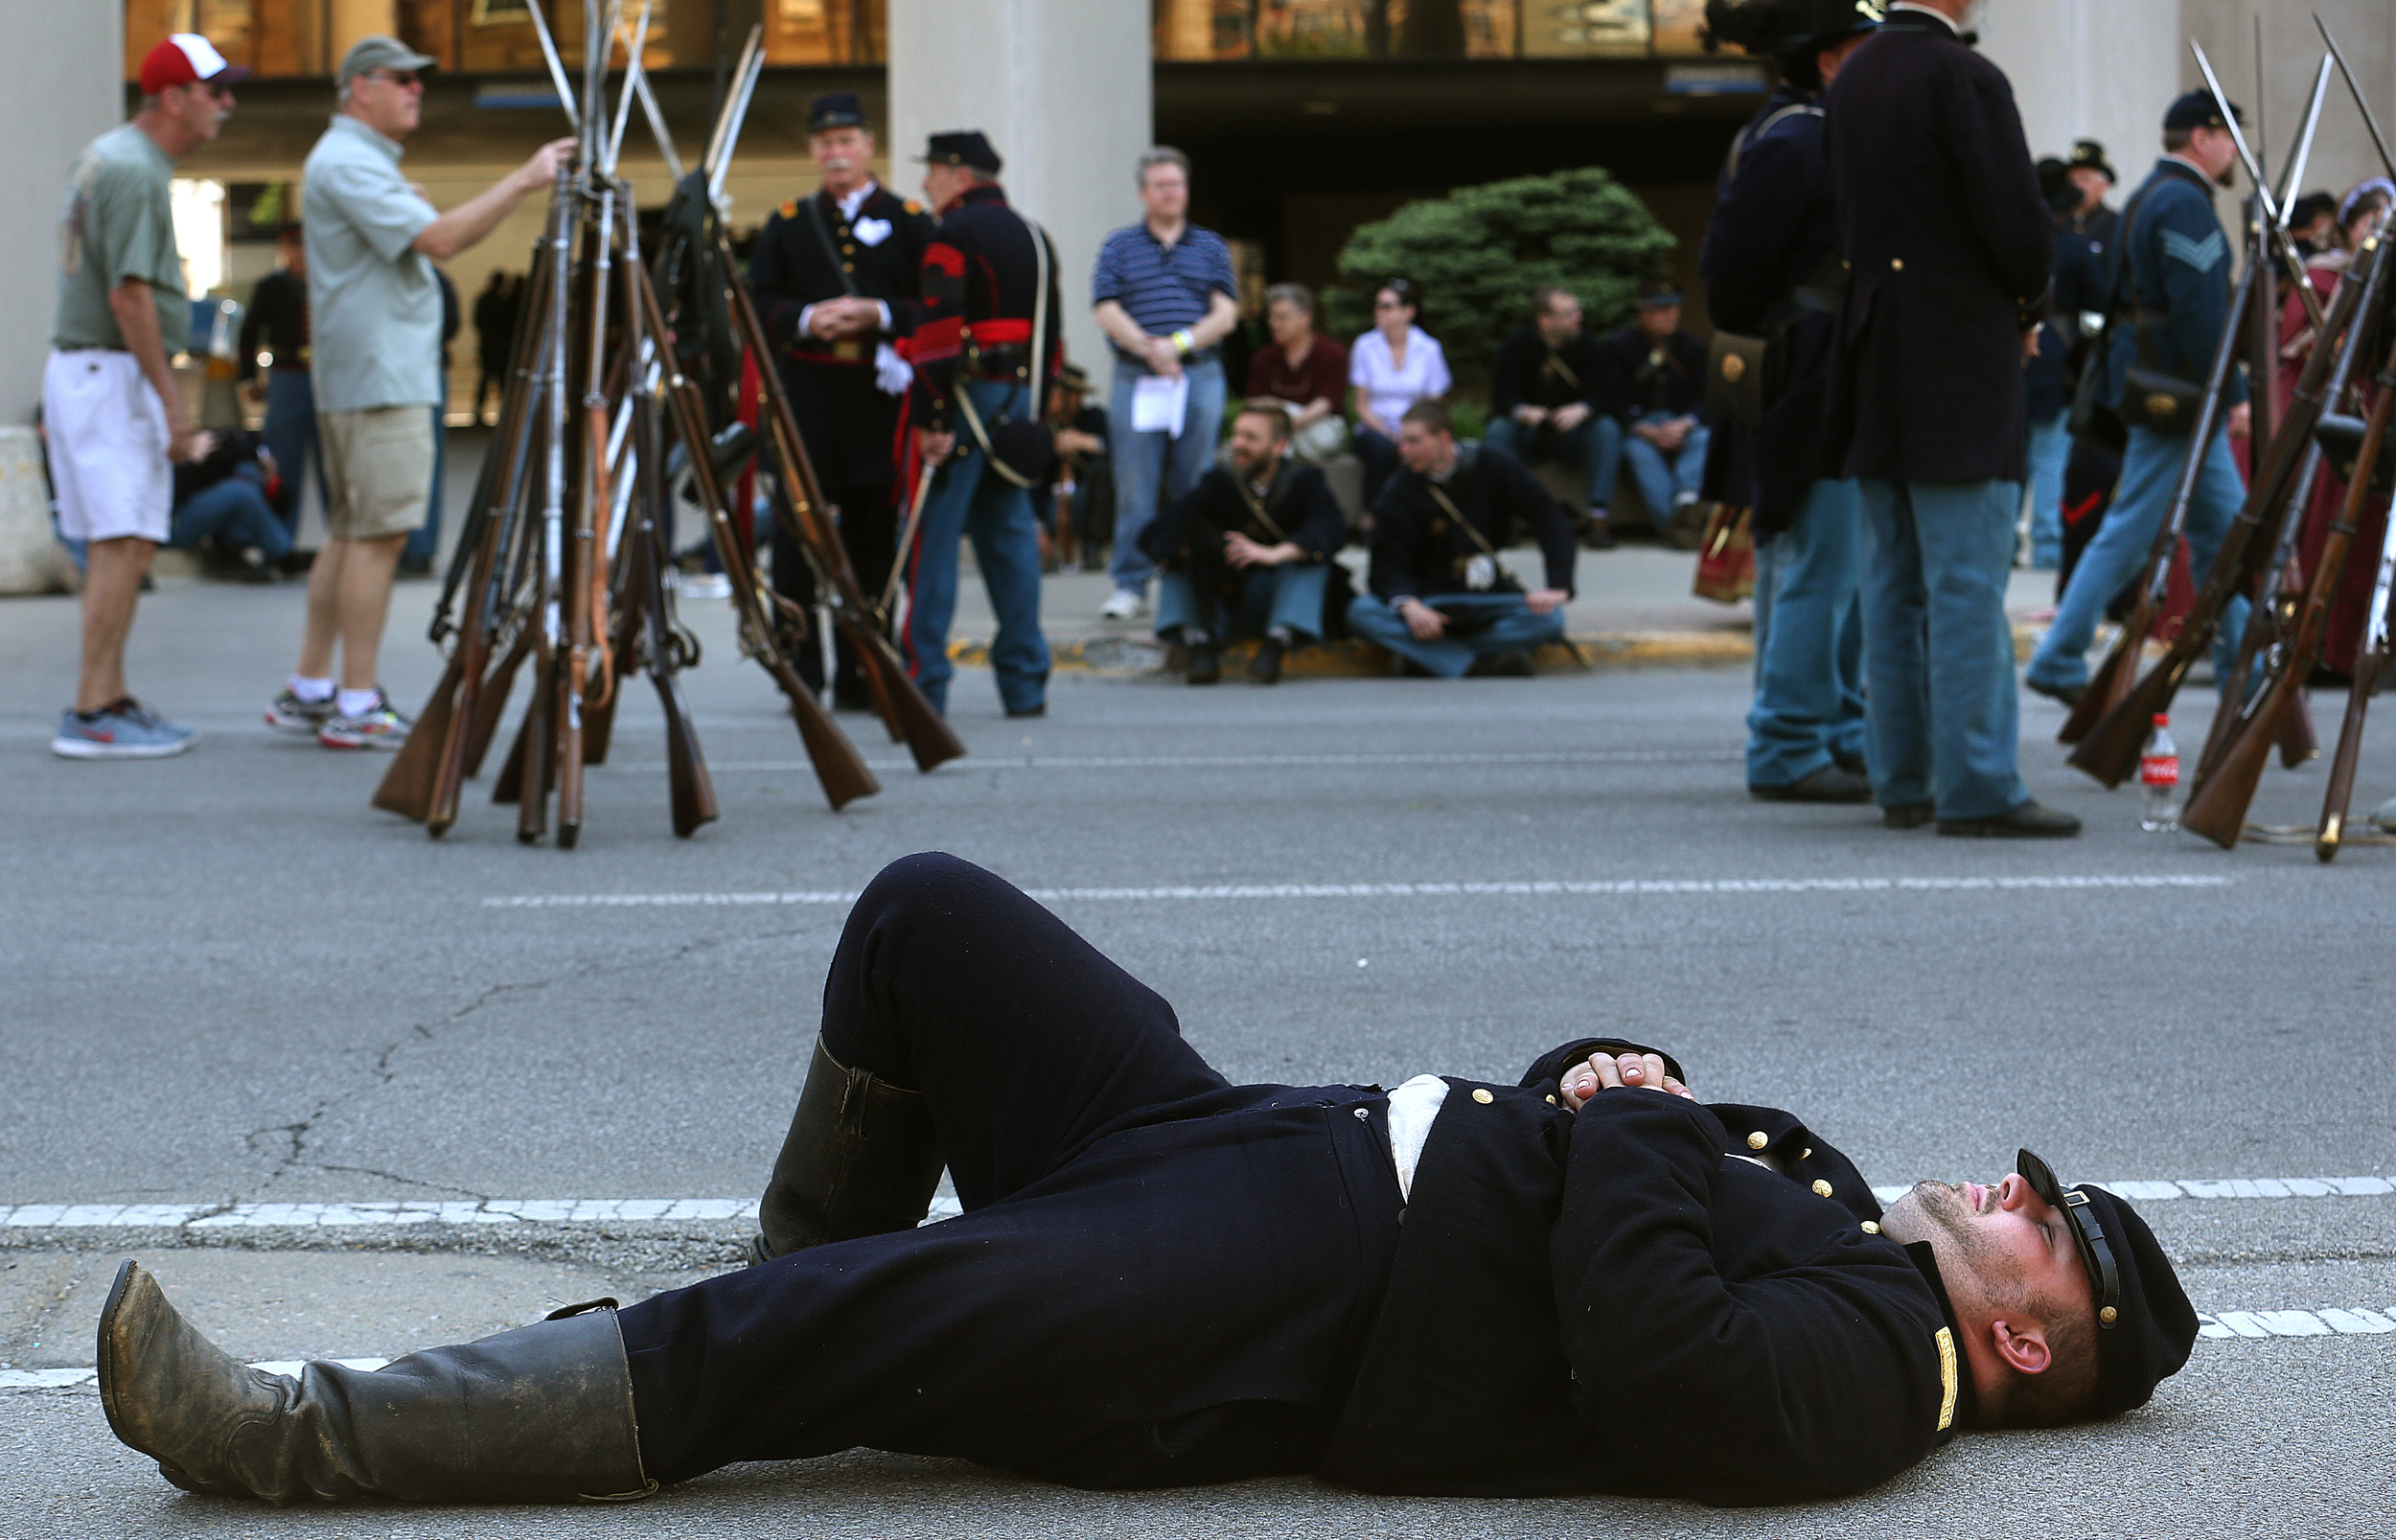 Alex Timmerman, a member of Company B of the Ninth Illinois Regiment from Deer Creek, Ill.,stretches out on Sixth StreetSundaybefore the start of the procession. Timmerman said his company, made up of 21 Union soldiers, had been marching all weekend. David Spencer/The State Journal-Register